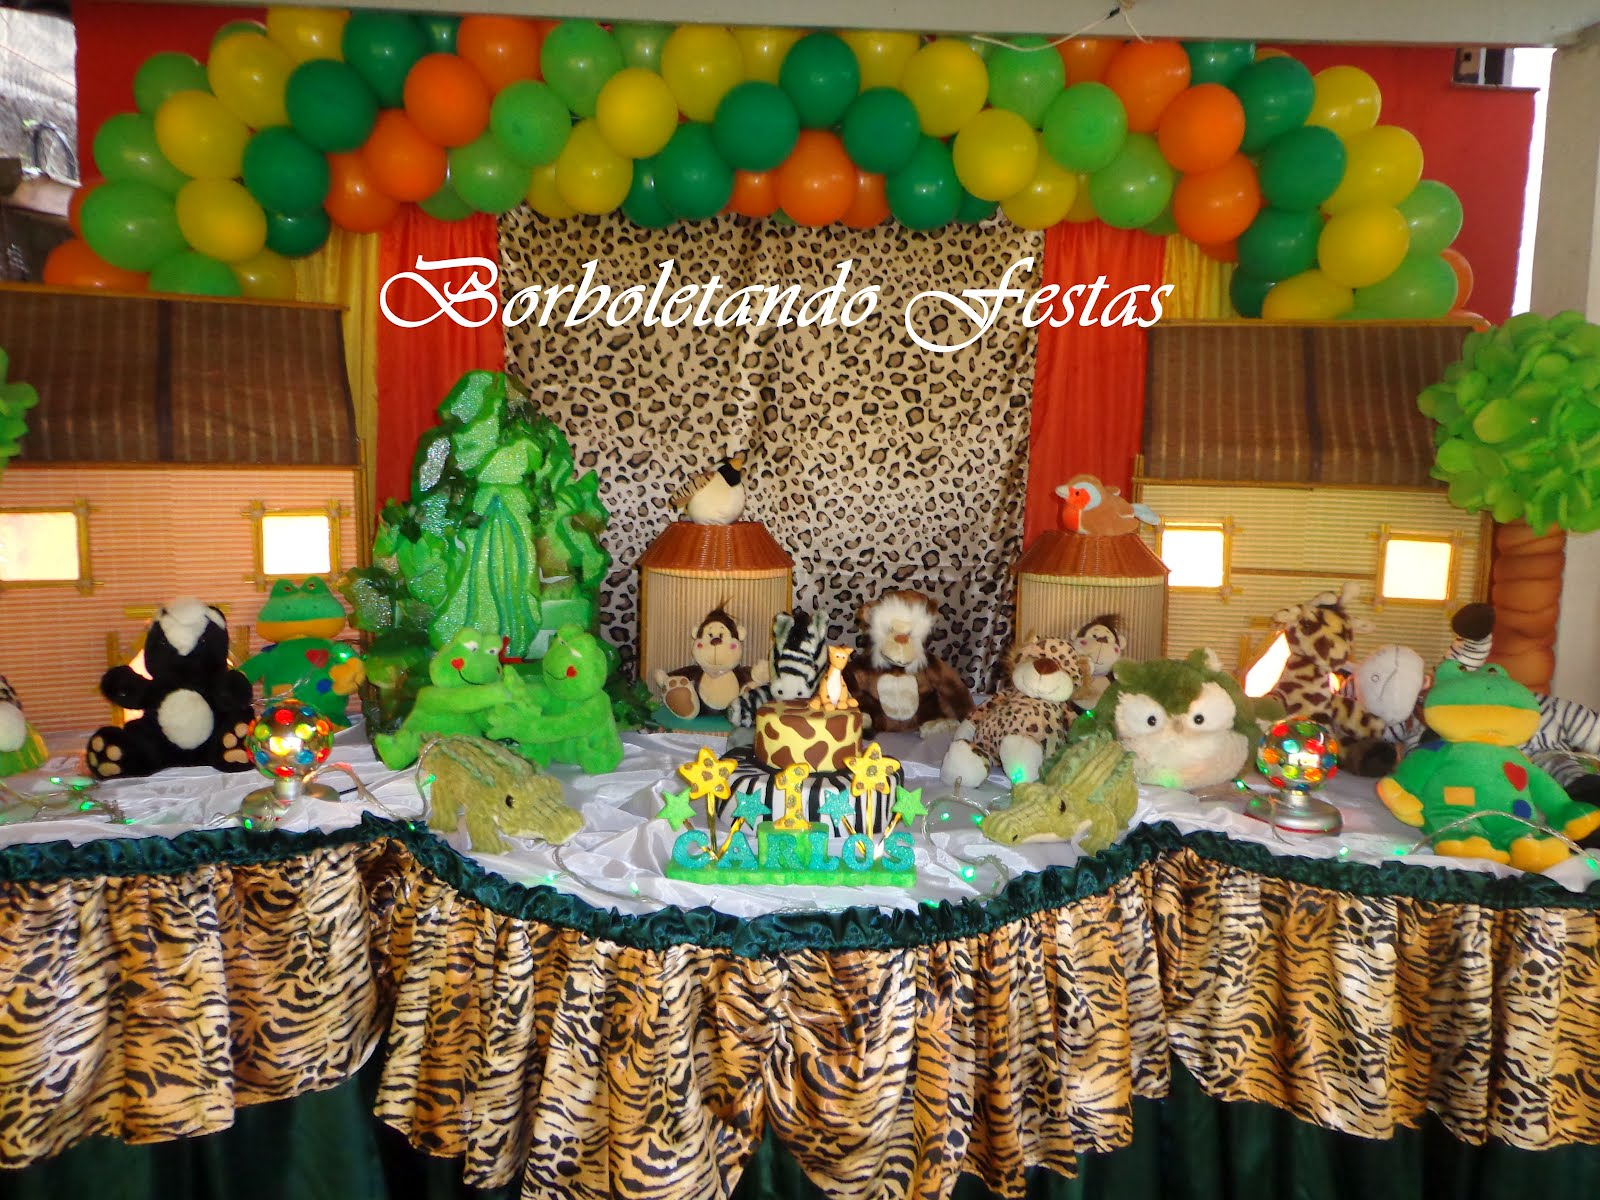 decoracao festa safari : decoracao festa safari:Decoracao Festa Safari Infantil